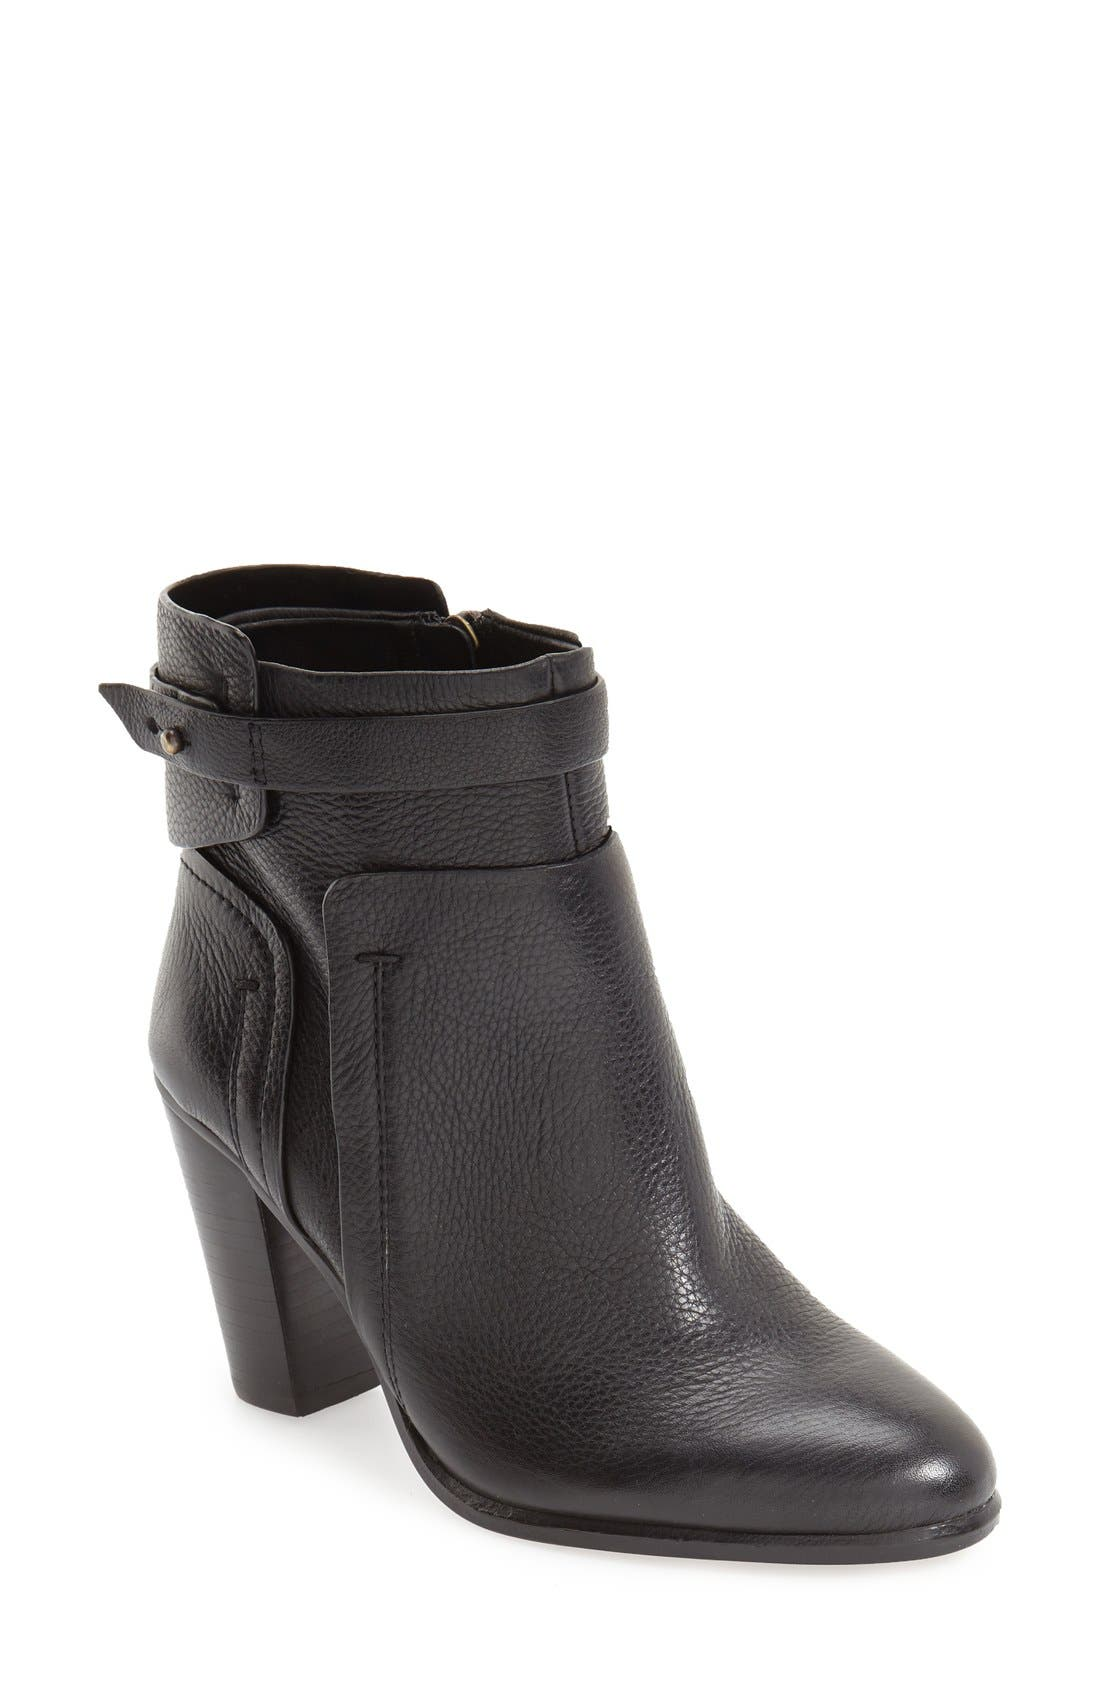 Main Image - Vince Camuto 'Faythe' Bootie (Women)